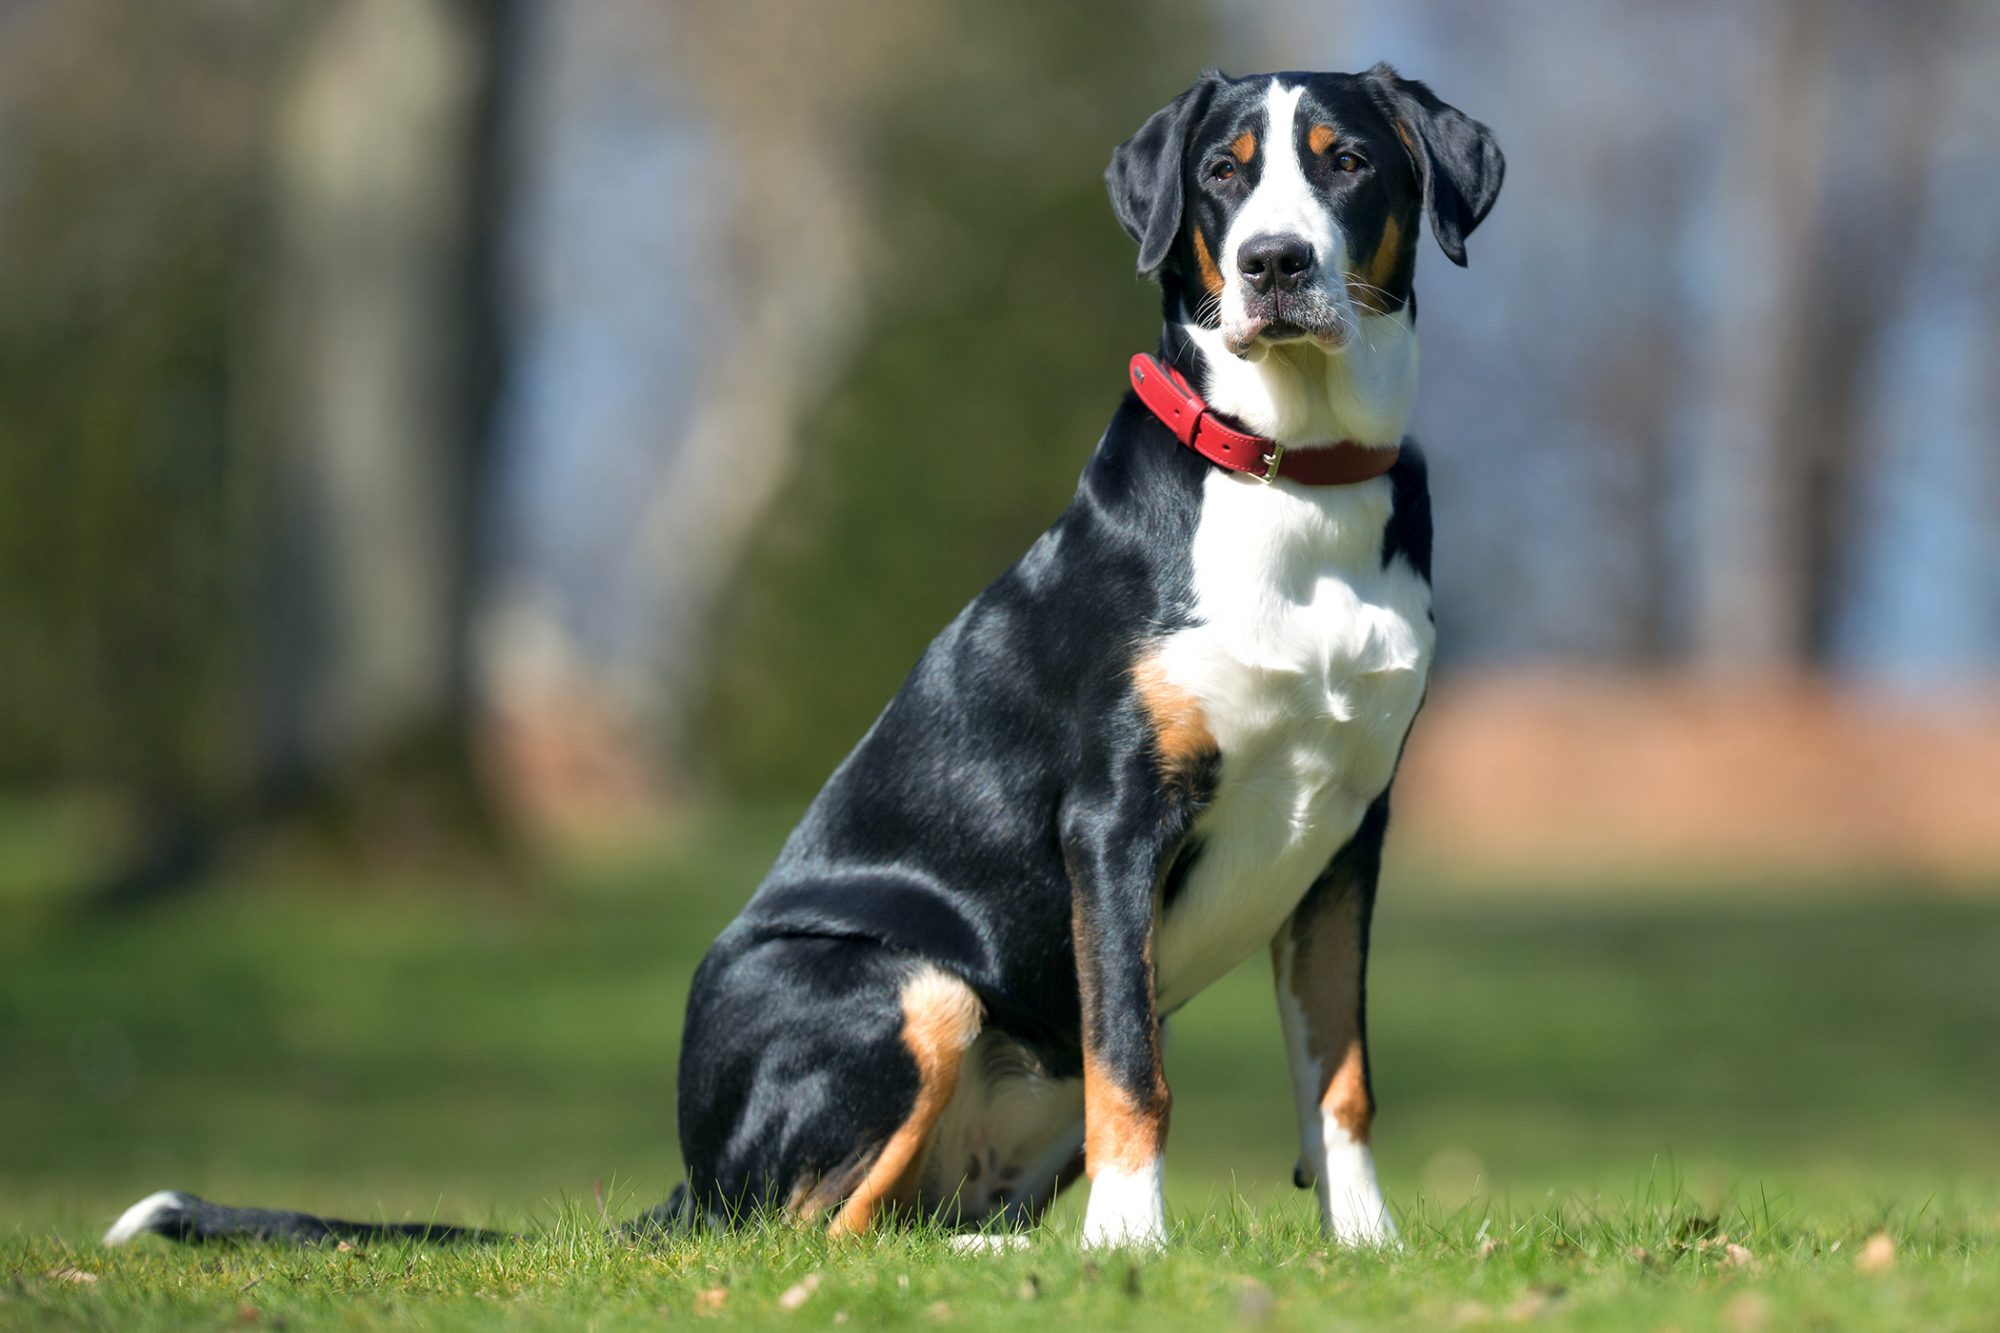 Greater Swiss Mountain Dog wears red collar and sits in grassy on sunny day